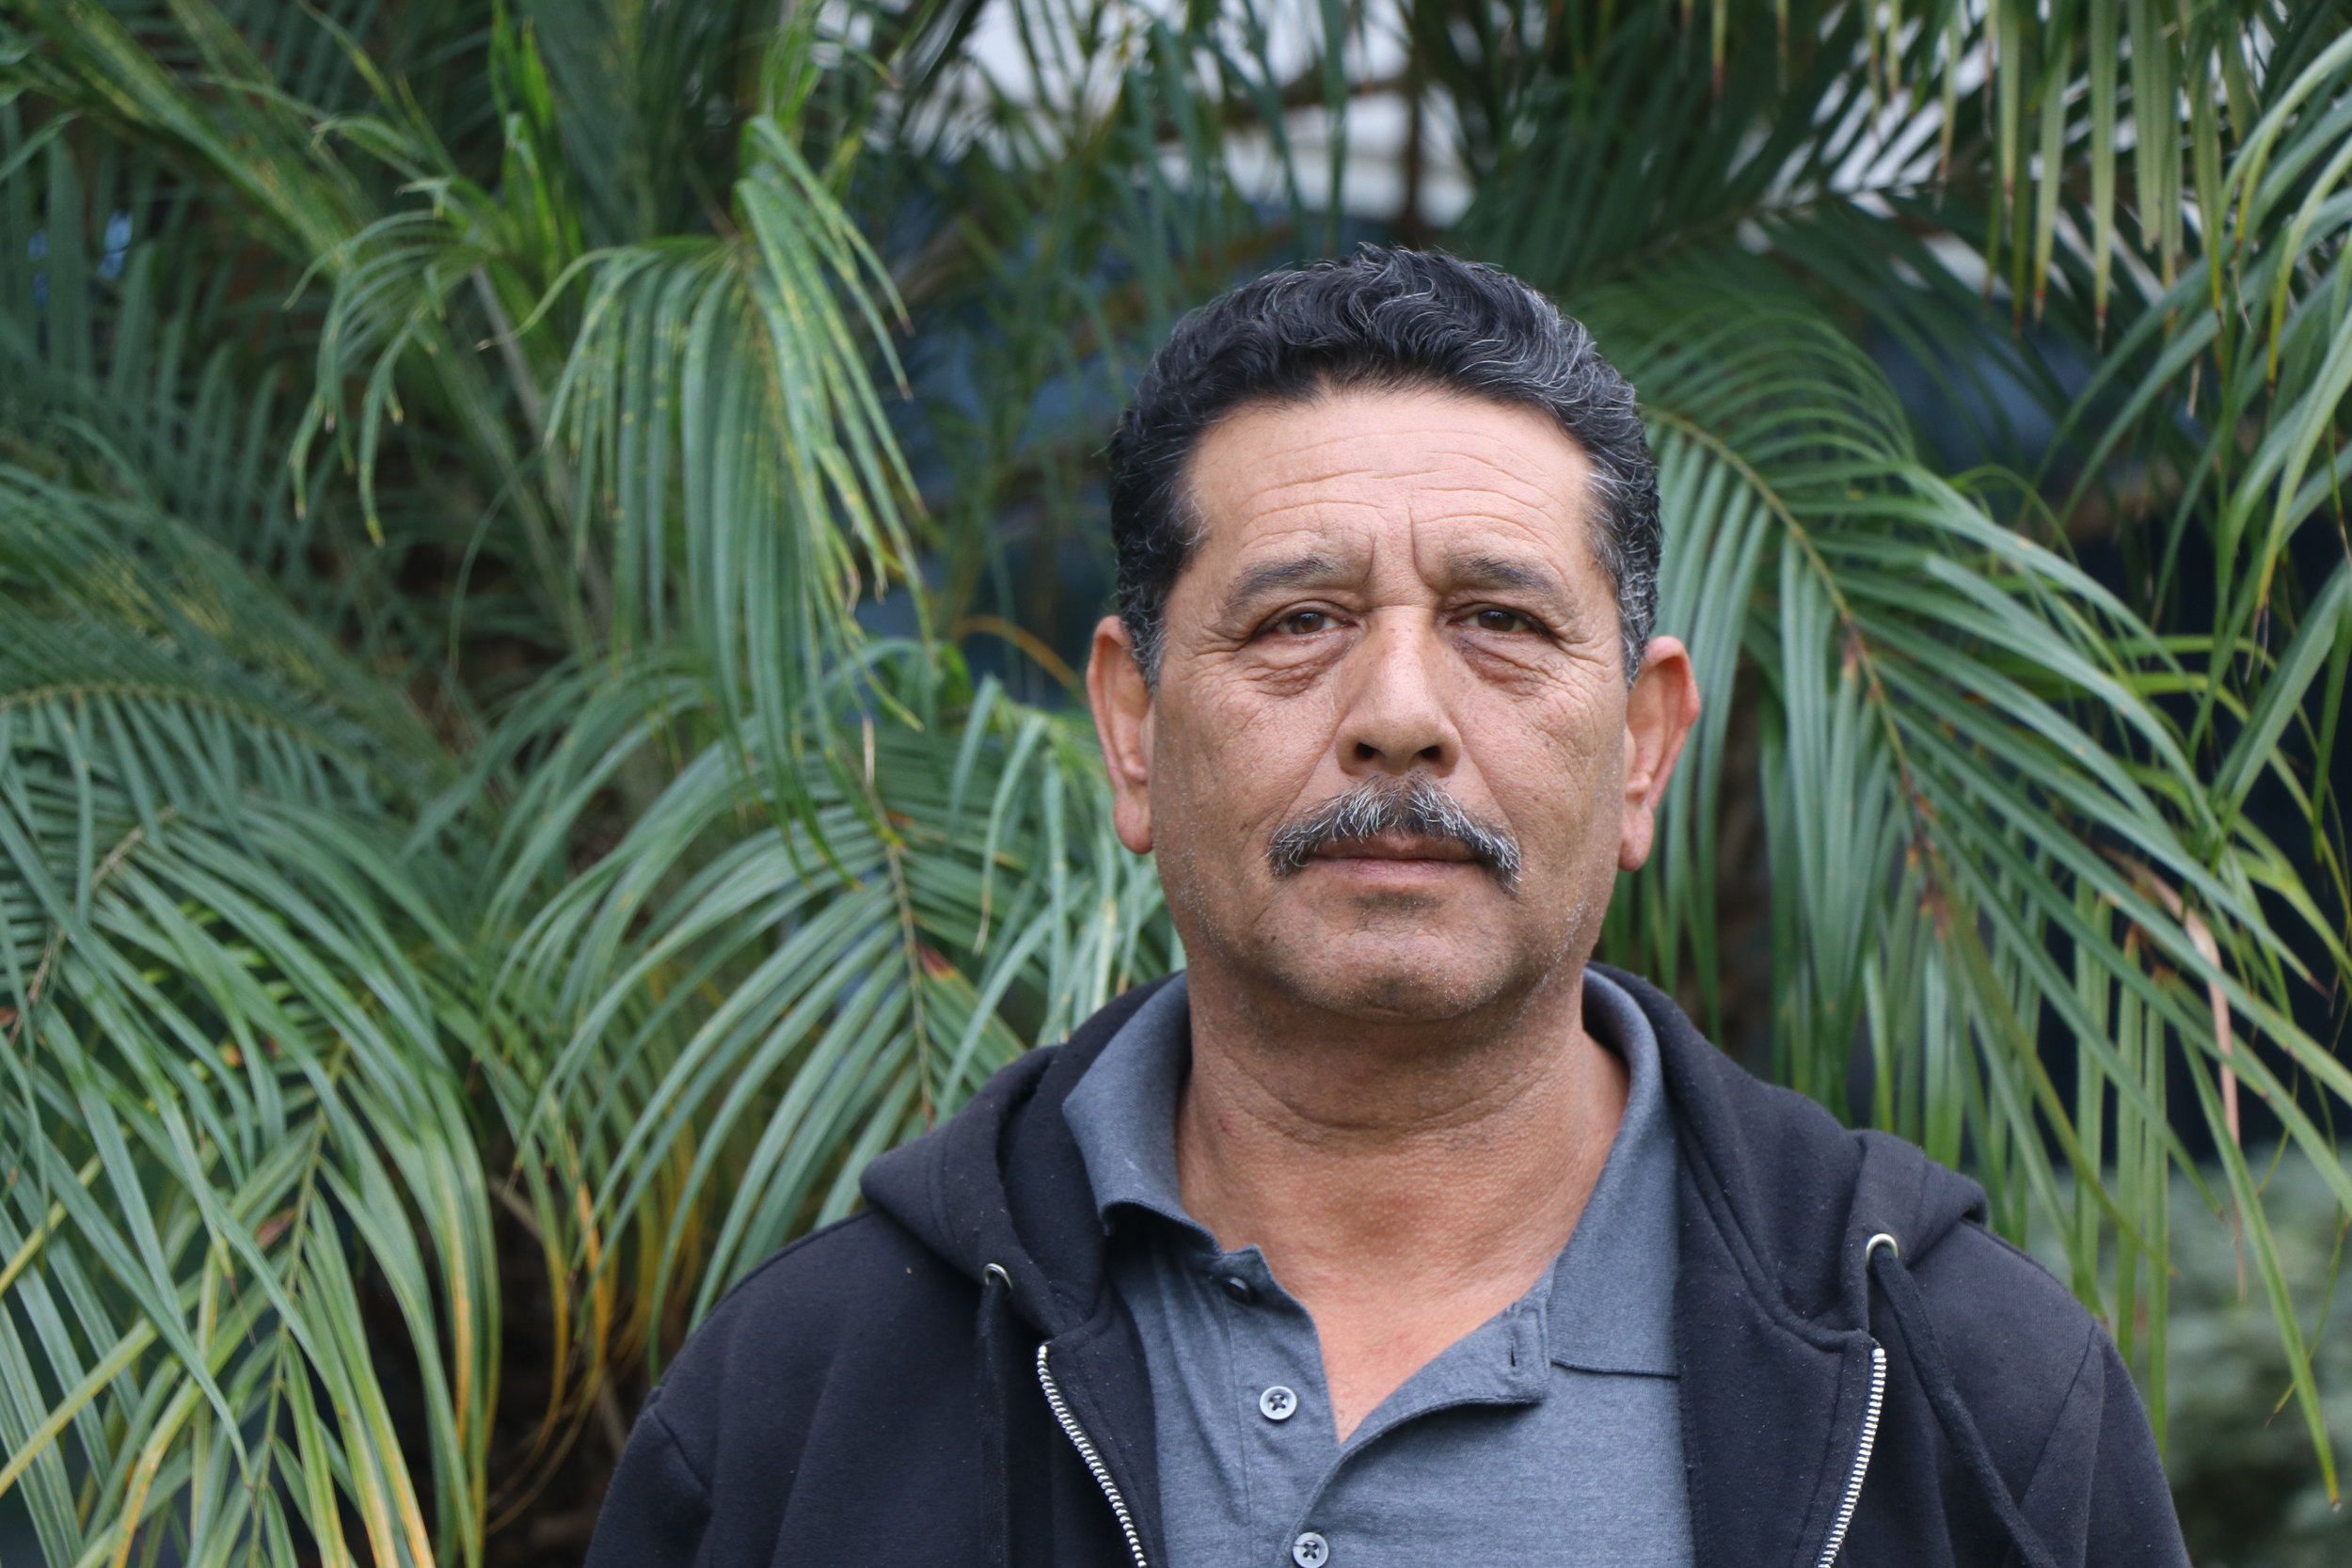 Eleazar Palomares  Multi-Family Field superintendent  Eleazar is an eight year team member and has been a valuable resource to the team with over 30 years of field experience.  He has a mind for construction, and taken command in his role as a leader. He enjoys the process of production building and the progress made through teamwork.  Outside of the field/office, Eleazar enjoys spending time with his ten grandchildren.  Fav Food: Mexican shrimp cocktails and shrimp tacos.